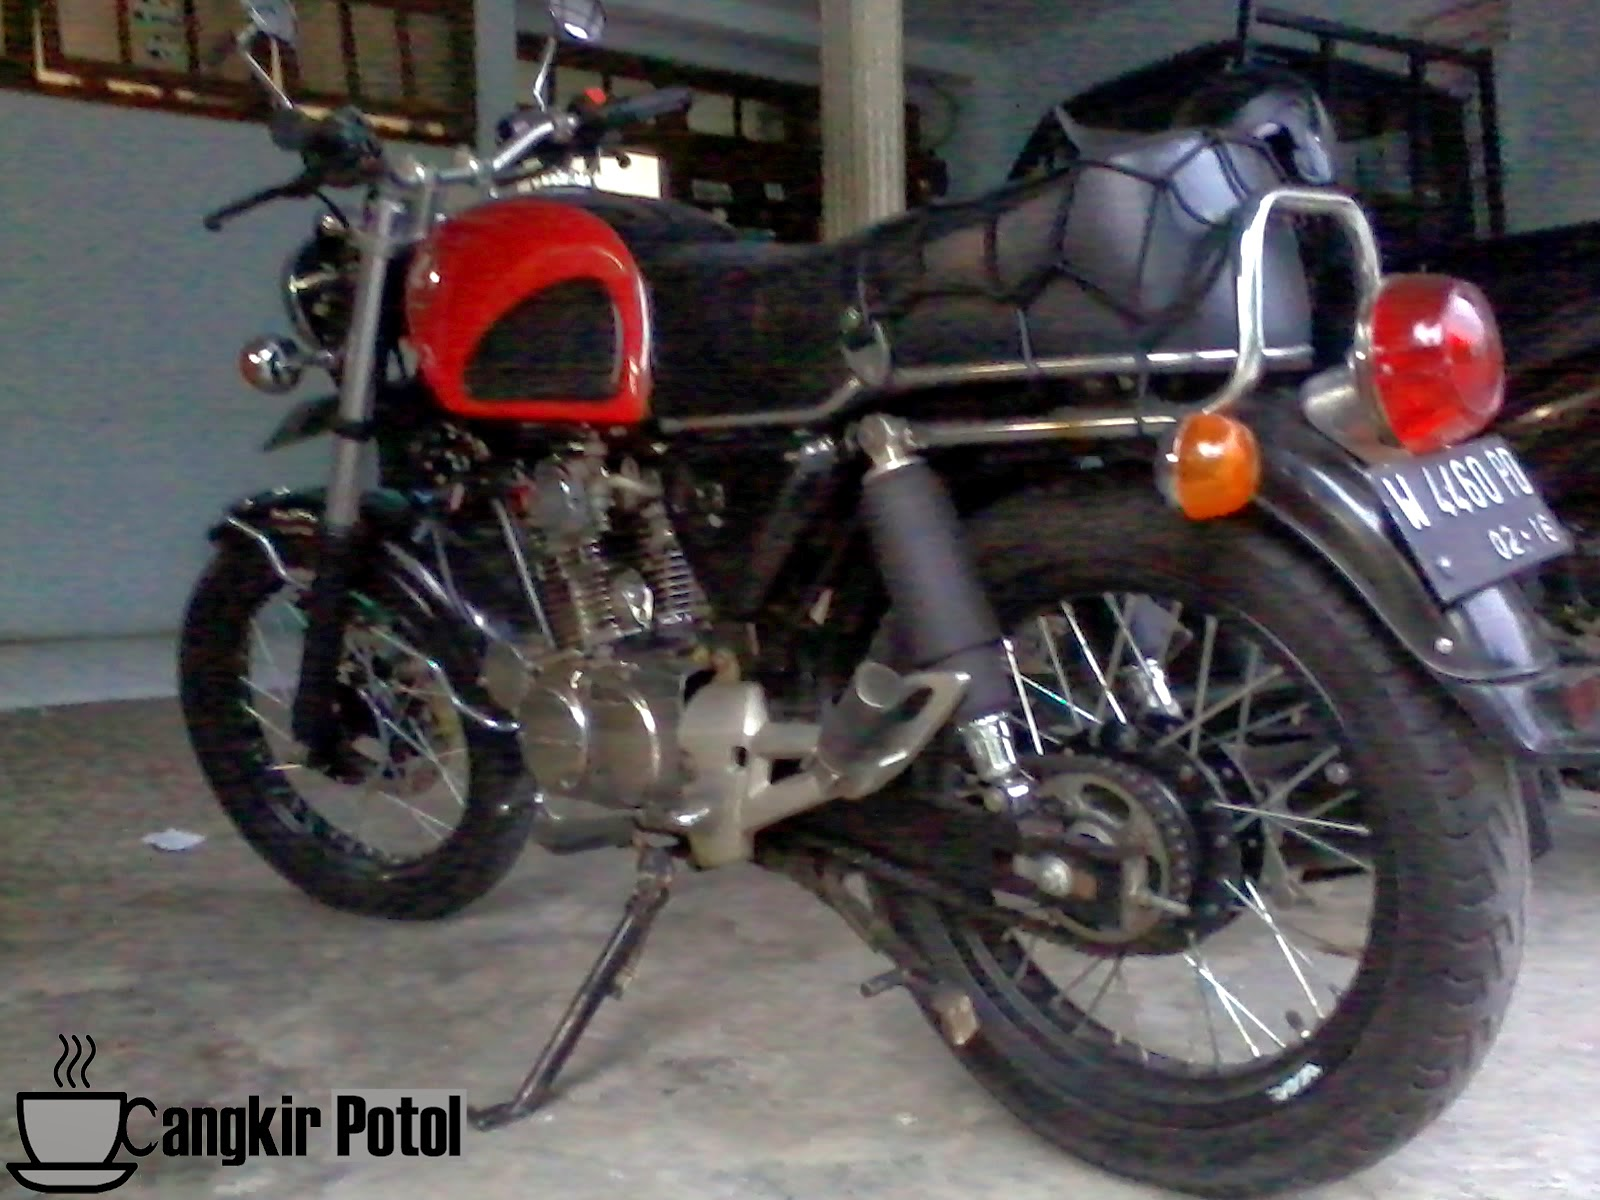 Download 72 Modifikasi Motor Honda Cb Dream Terupdate Fire Modif